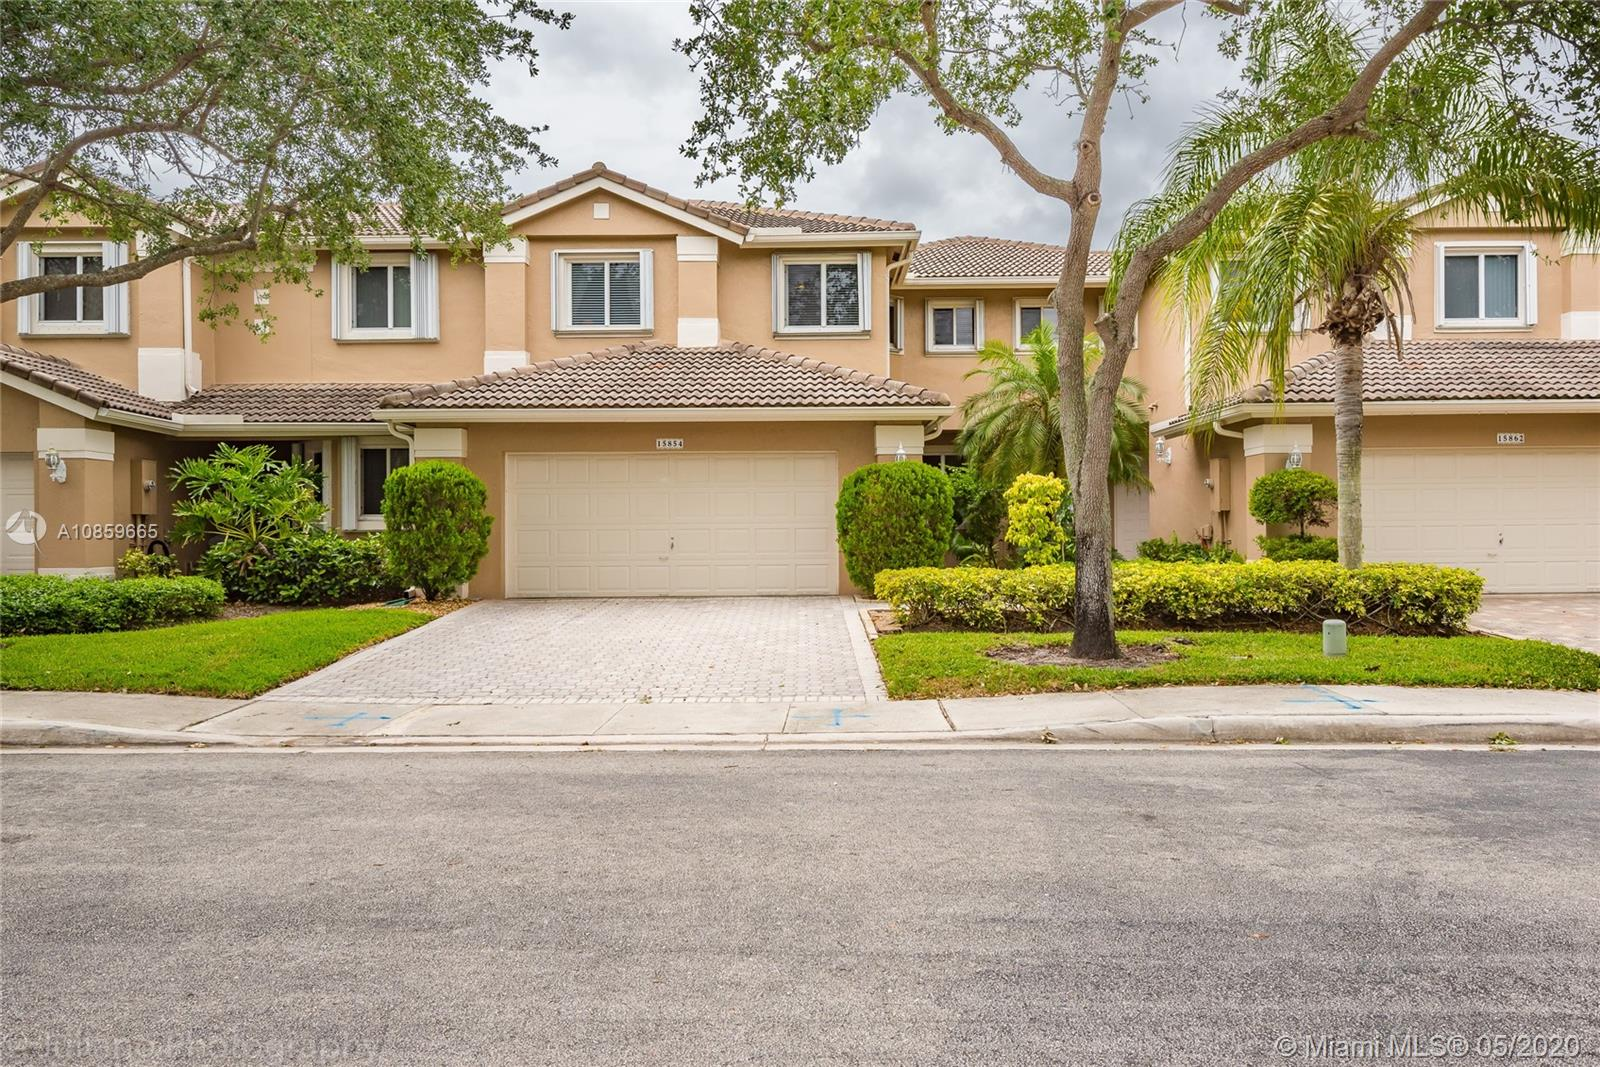 "DECORATOR'S DELIGHT!!! IMPECCABLE SPACIOUS TOWNHOME IN OPTIMAL CONDITION. LOCATED IN DESIRABLE GATED GOLF  RESORT COMMUNITY ""GRAND PALMS"" LOOKING FOR A WELL QUALIFIED BUYER THAT WILL APPRECIATE THE SERENE ATMOSPHERE OF THIS UNIT. ONE OF THE LARGEST LOTS IN COMPLEX. LARGER THAN TAX INF. PATIO OVERLOOKING A PARK-LIKE SETTING.  VOLUME CEILING AND  PLENTY OF NATURAL LIGHT. UPGRADES IN KITCHEN AND BATHROOMS. LARGE MASTER BEDROOM WITH CUSTOM WALKING CLOSET. JACUZZI ON MASTER BATH. ACCORDION HURRICANE SHUTTERS ON 2ND FLOOR AND IMPACT REAR DOOR .  ASSOCIATION PROVIDES ROOF MAINTENANCE AND  REPAIRS,TREE AND LANDSCAPING UPKEEP. COMMUNITY POOL AND INDIVIDUAL POOL FOR THE COURTYARD FAMILIES. SECURITY ENTRANCE GATE,  ADT SECURITY SYSTEM, SECURITY PATROL, BLUE STREAM TV/INTERNET , ROAD REPAIRS AND MORE!"